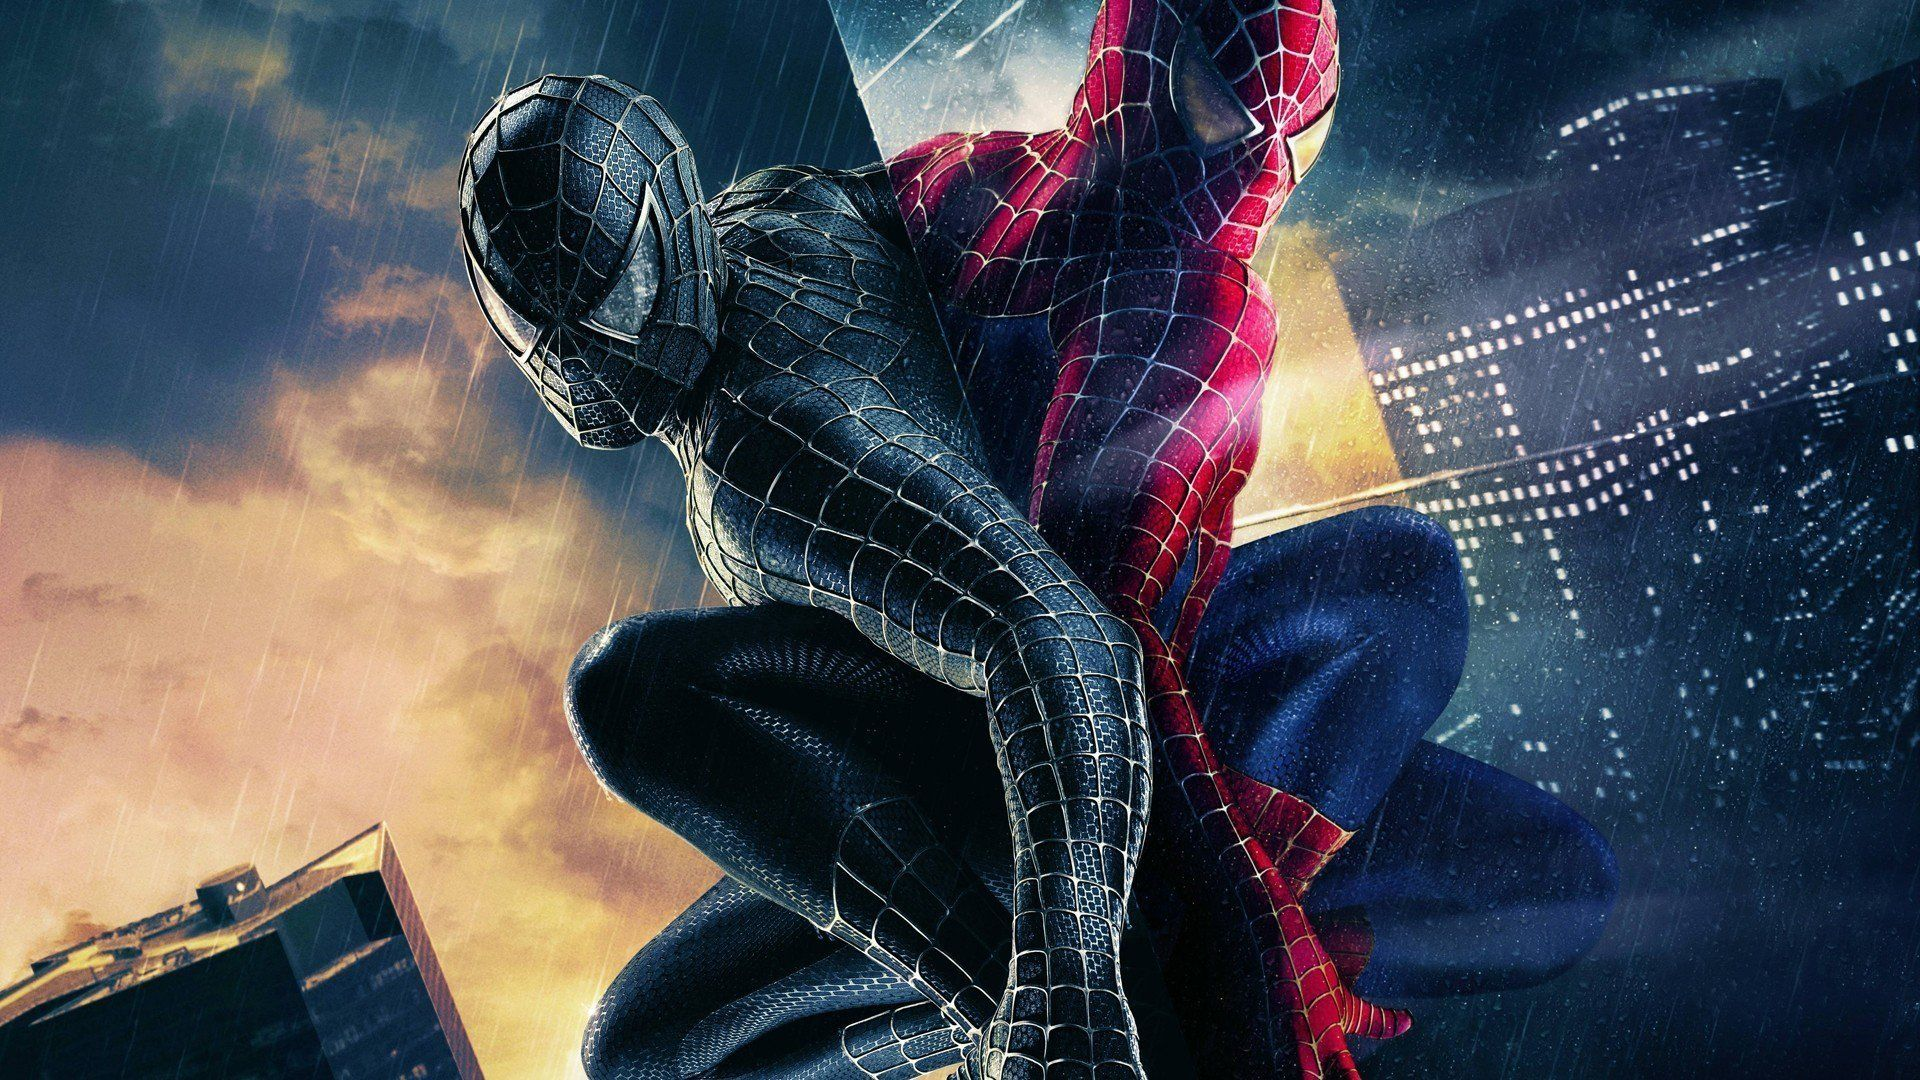 16 Spider Man 3 Hd Wallpapers Backgrounds Wallpaper Abyss Spiderman Spiderman Movie Office Artwork